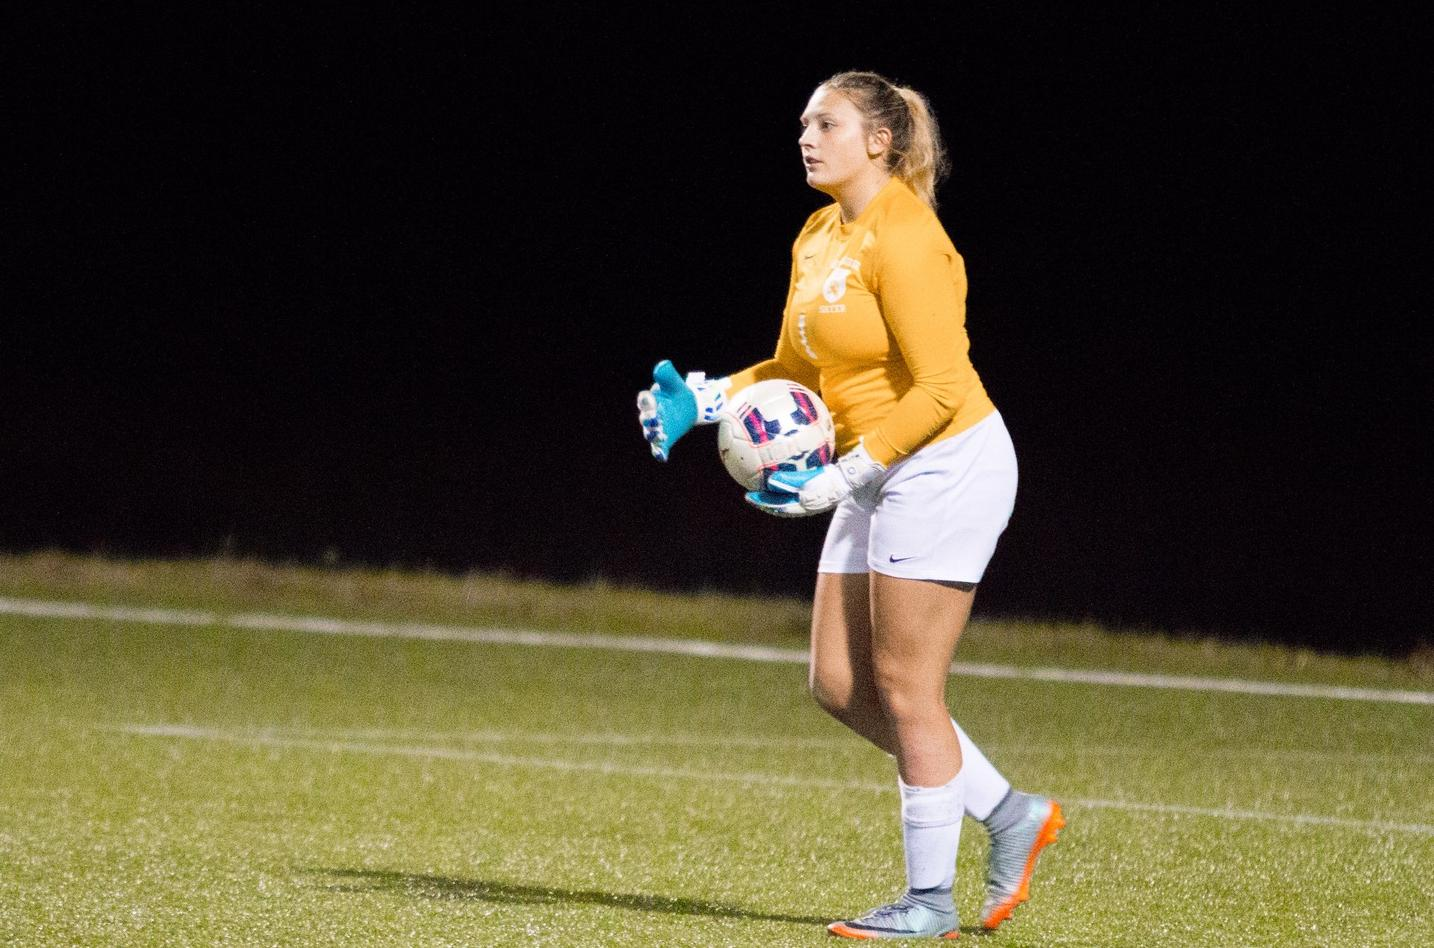 Freshman GK Bailey Kaufman kept her second consecutive clean sheet